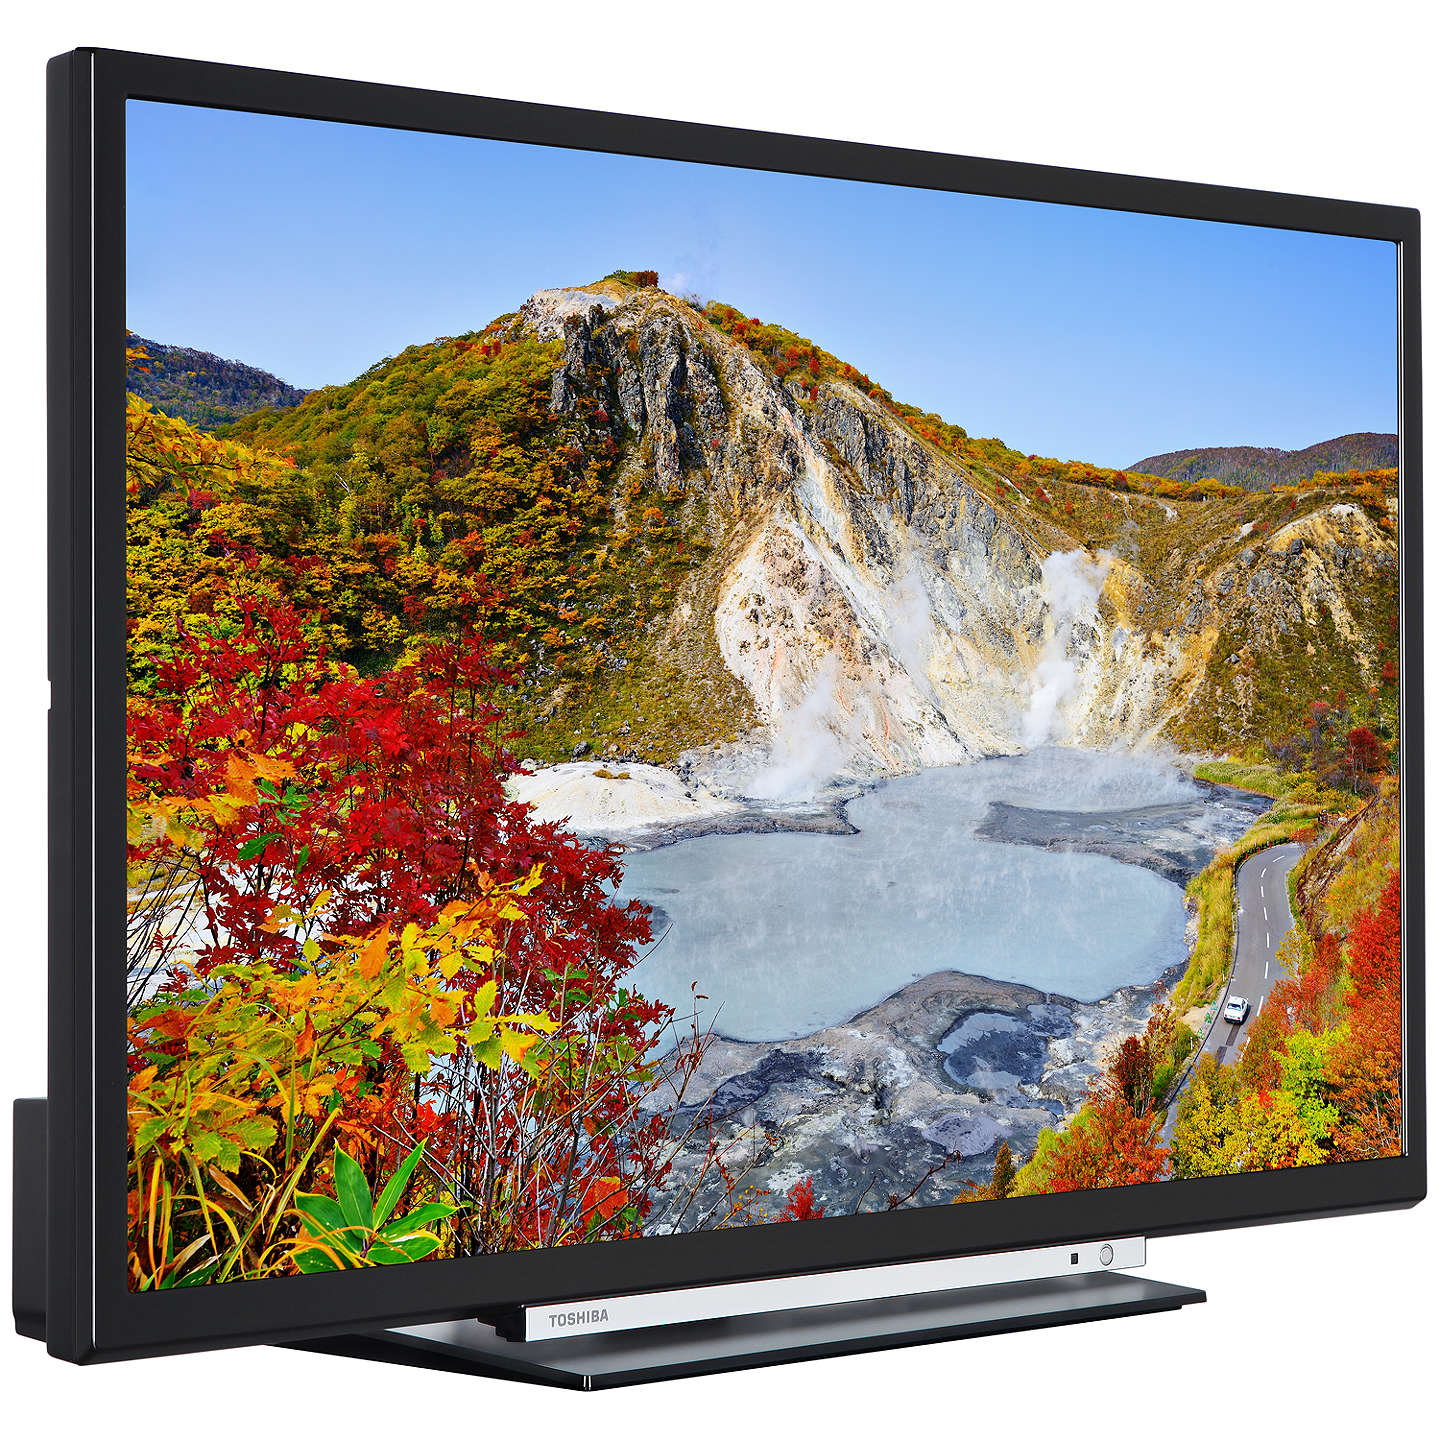 "BuyToshiba 24W3753DB LED HD Ready 720p Smart TV, 24"" with Built-In Wi-Fi, Freeview HD & Freeview Play, Black Online at johnlewis.com"